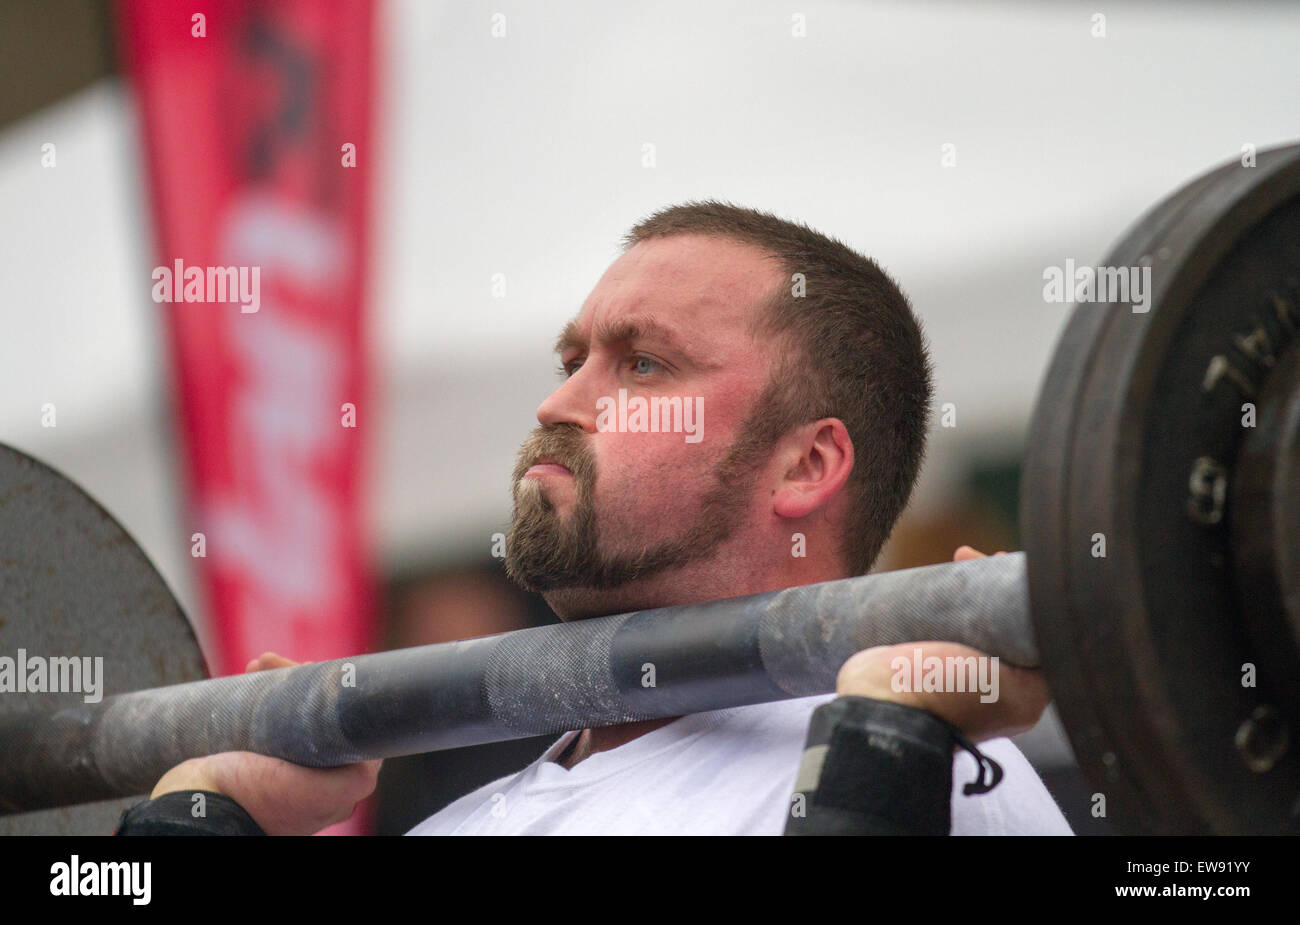 Strongman Truck Stockfotos & Strongman Truck Bilder - Alamy